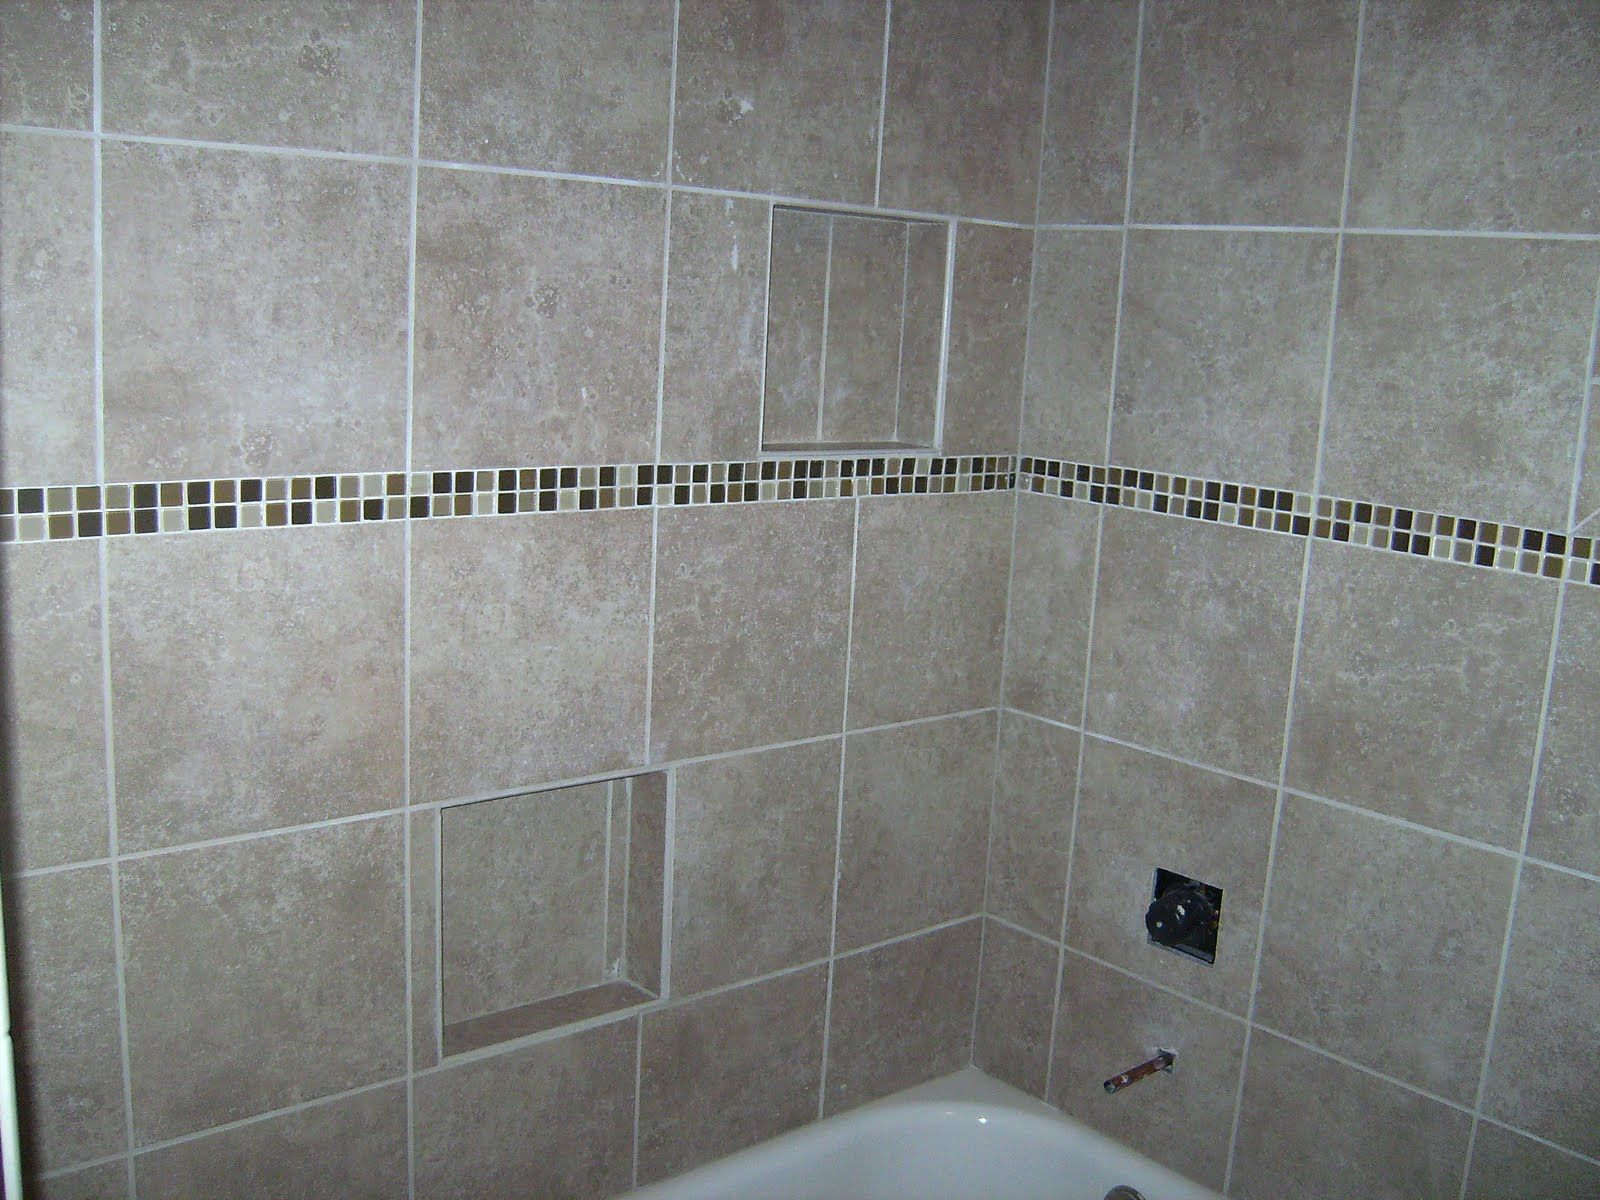 How to tile a bathroom walls as well as shower tub area shower tub bathroom designs and tubs - Tile shower surround ideas ...